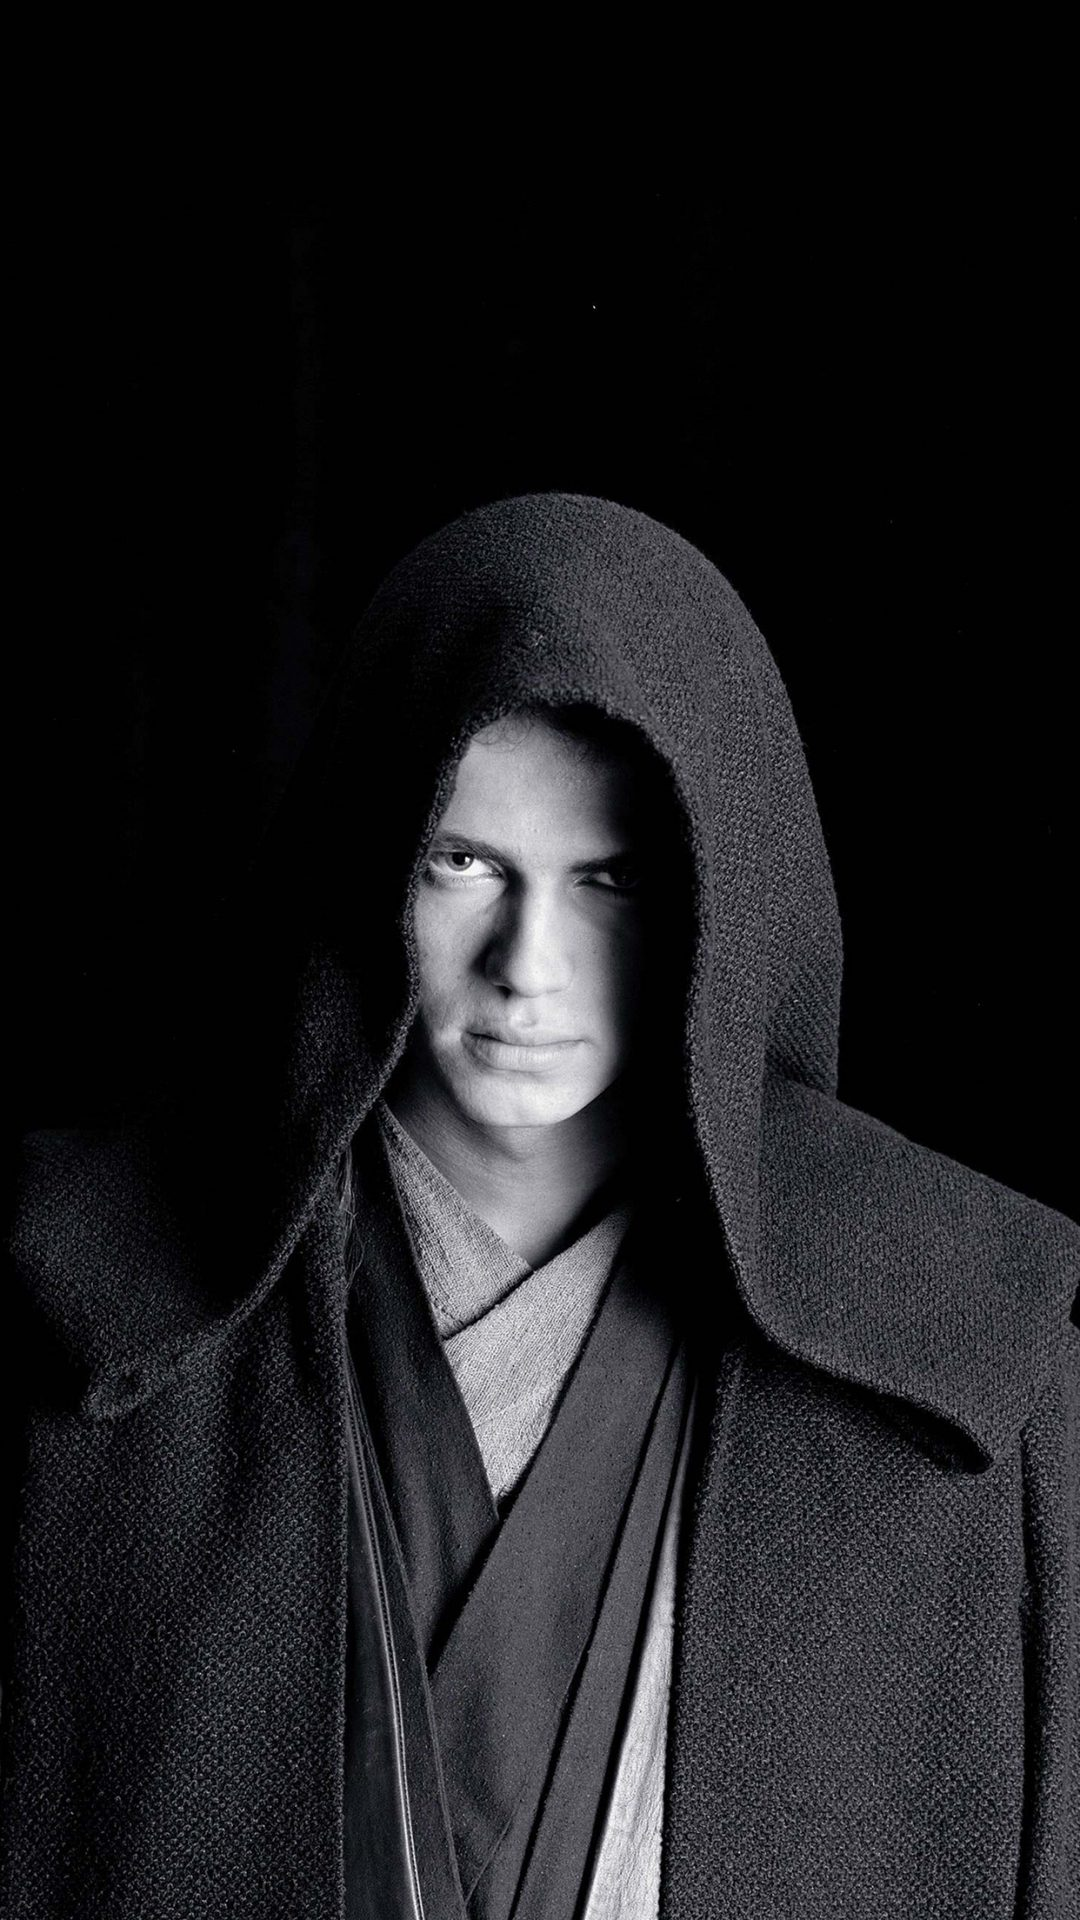 Anakin Skywalker Starwars Dark Film